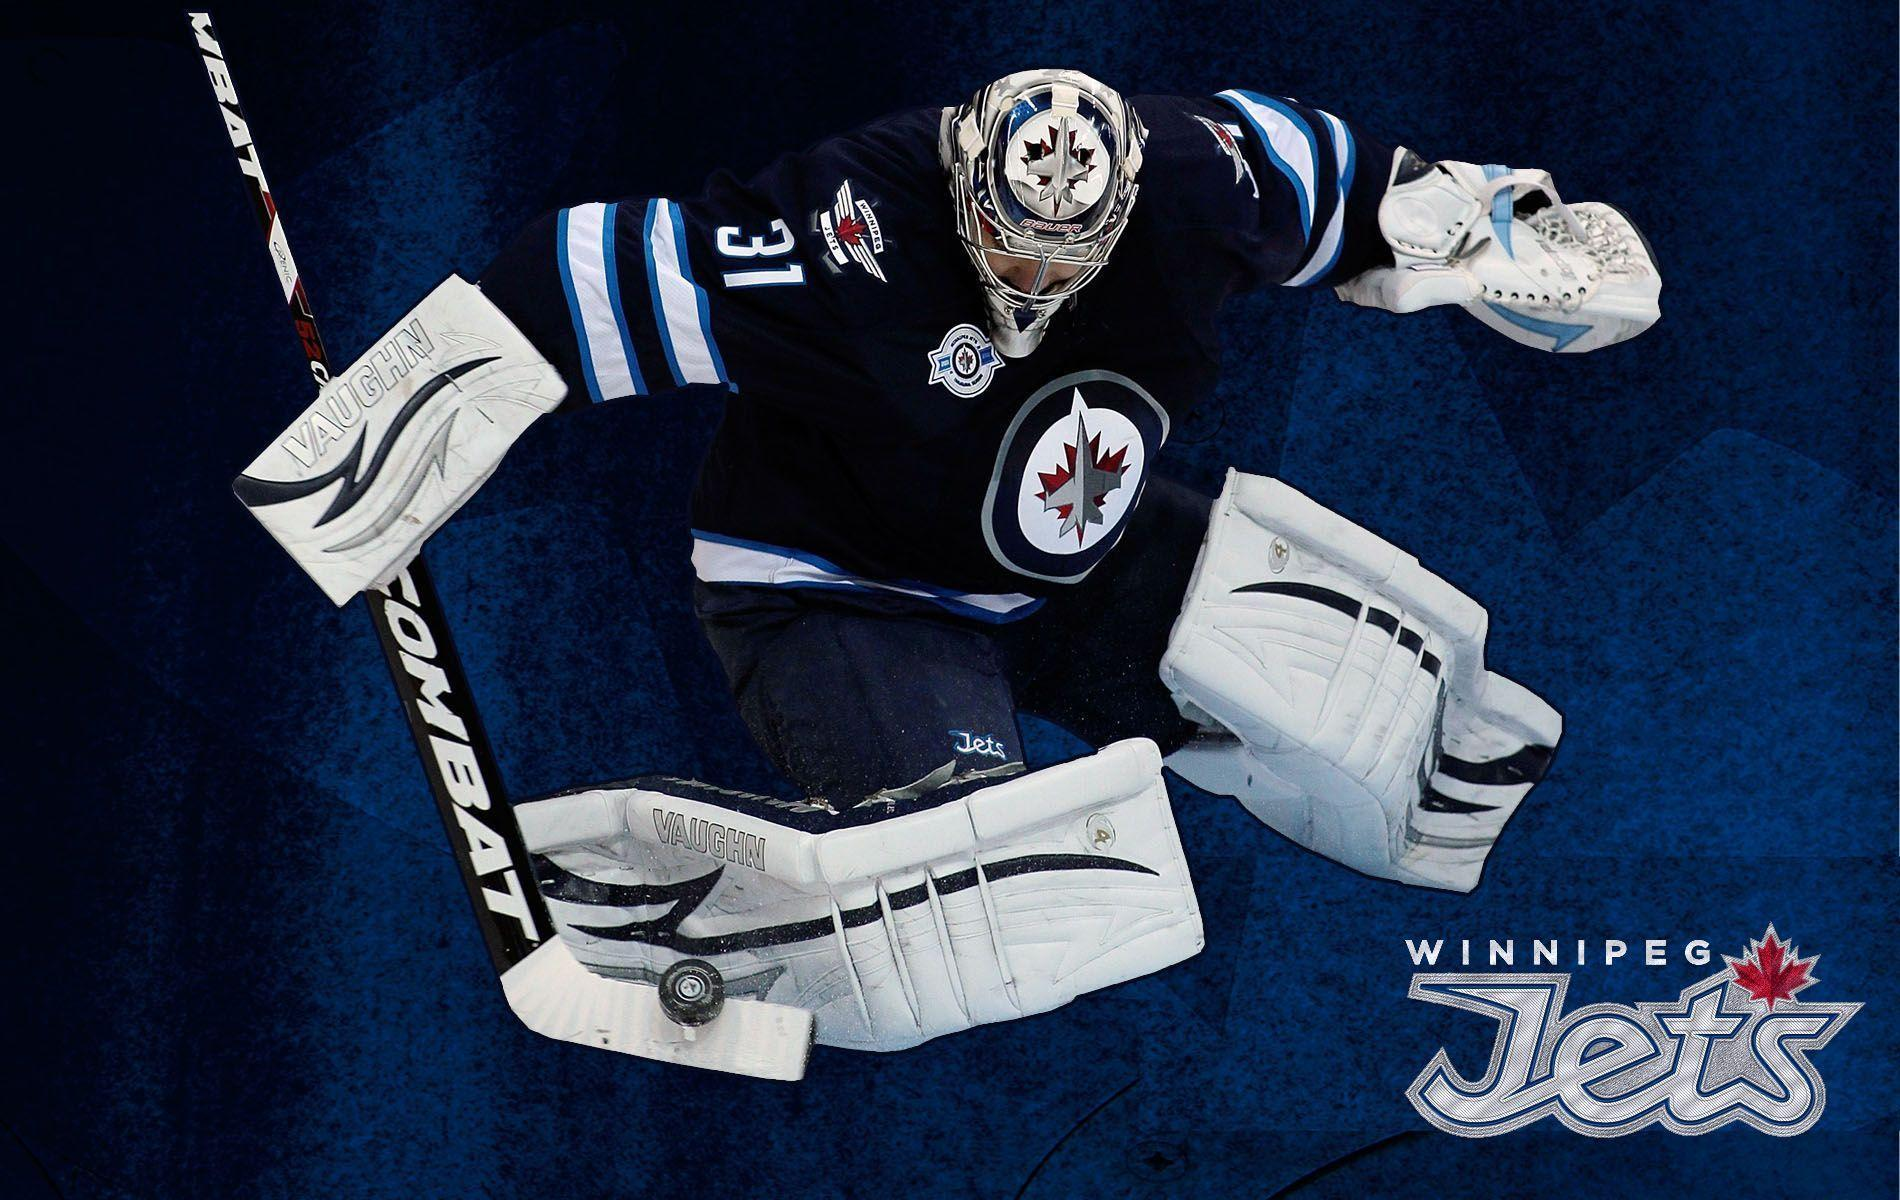 OT: I&looking for O. Pavelec wallpaper.